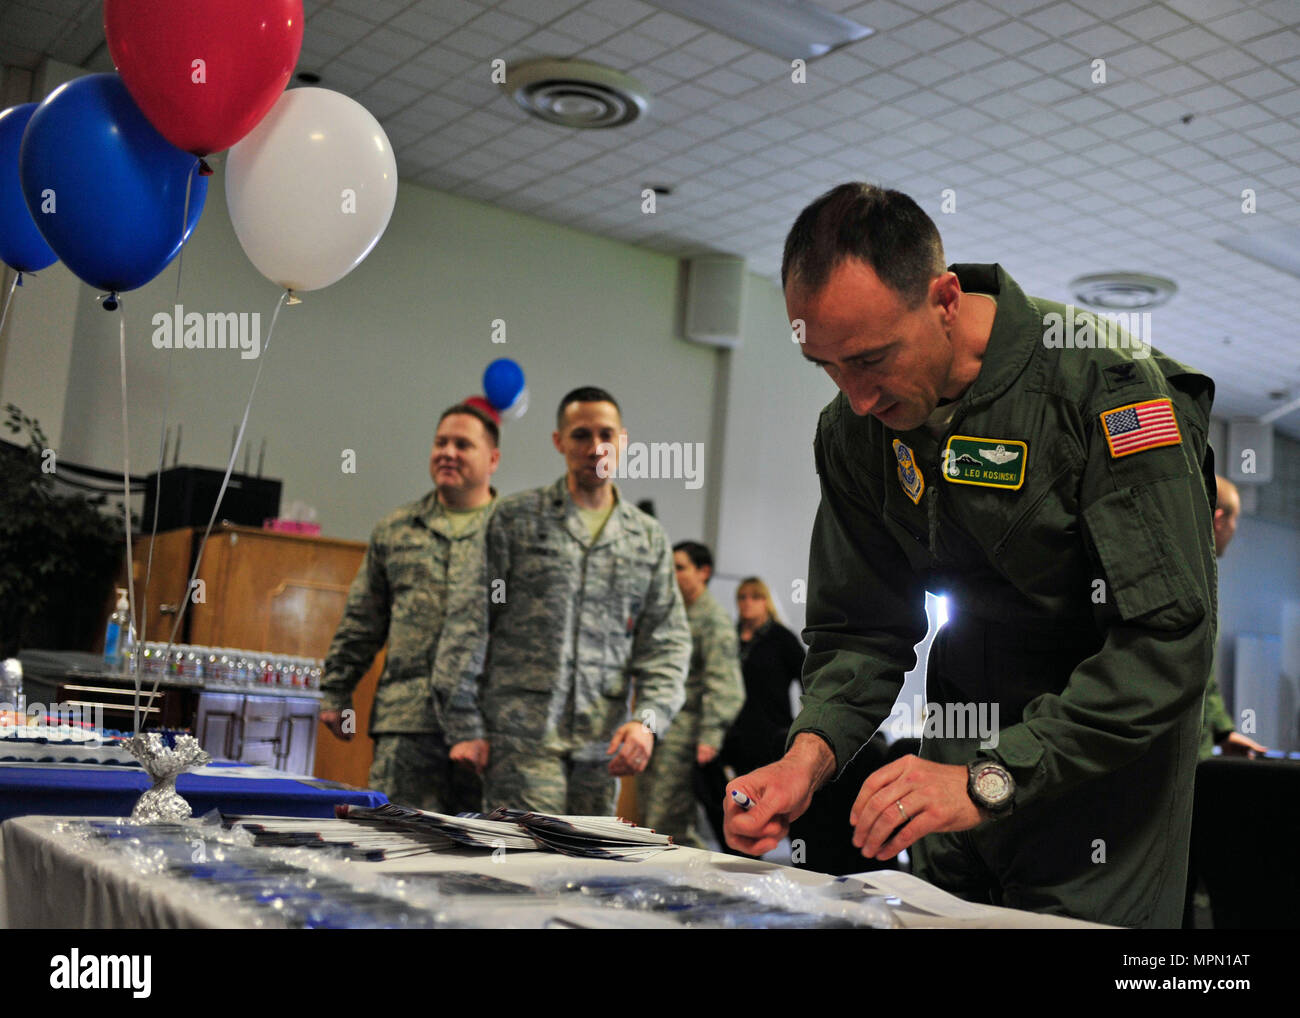 Col. Leonard Kosinski, 62nd Airlift Wing commander, fills out an Air Force Assistance Fund donation form at the AFAF kick-off event, April 6, 2017 at the McChord Field Chapel Support Center. Team McChord hopes to raise $51,576 in donations throughout the campaign, which lasts from April 10 through May 19. (U.S. Air Force photo/Staff Sgt. Whitney Amstutz) - Stock Image